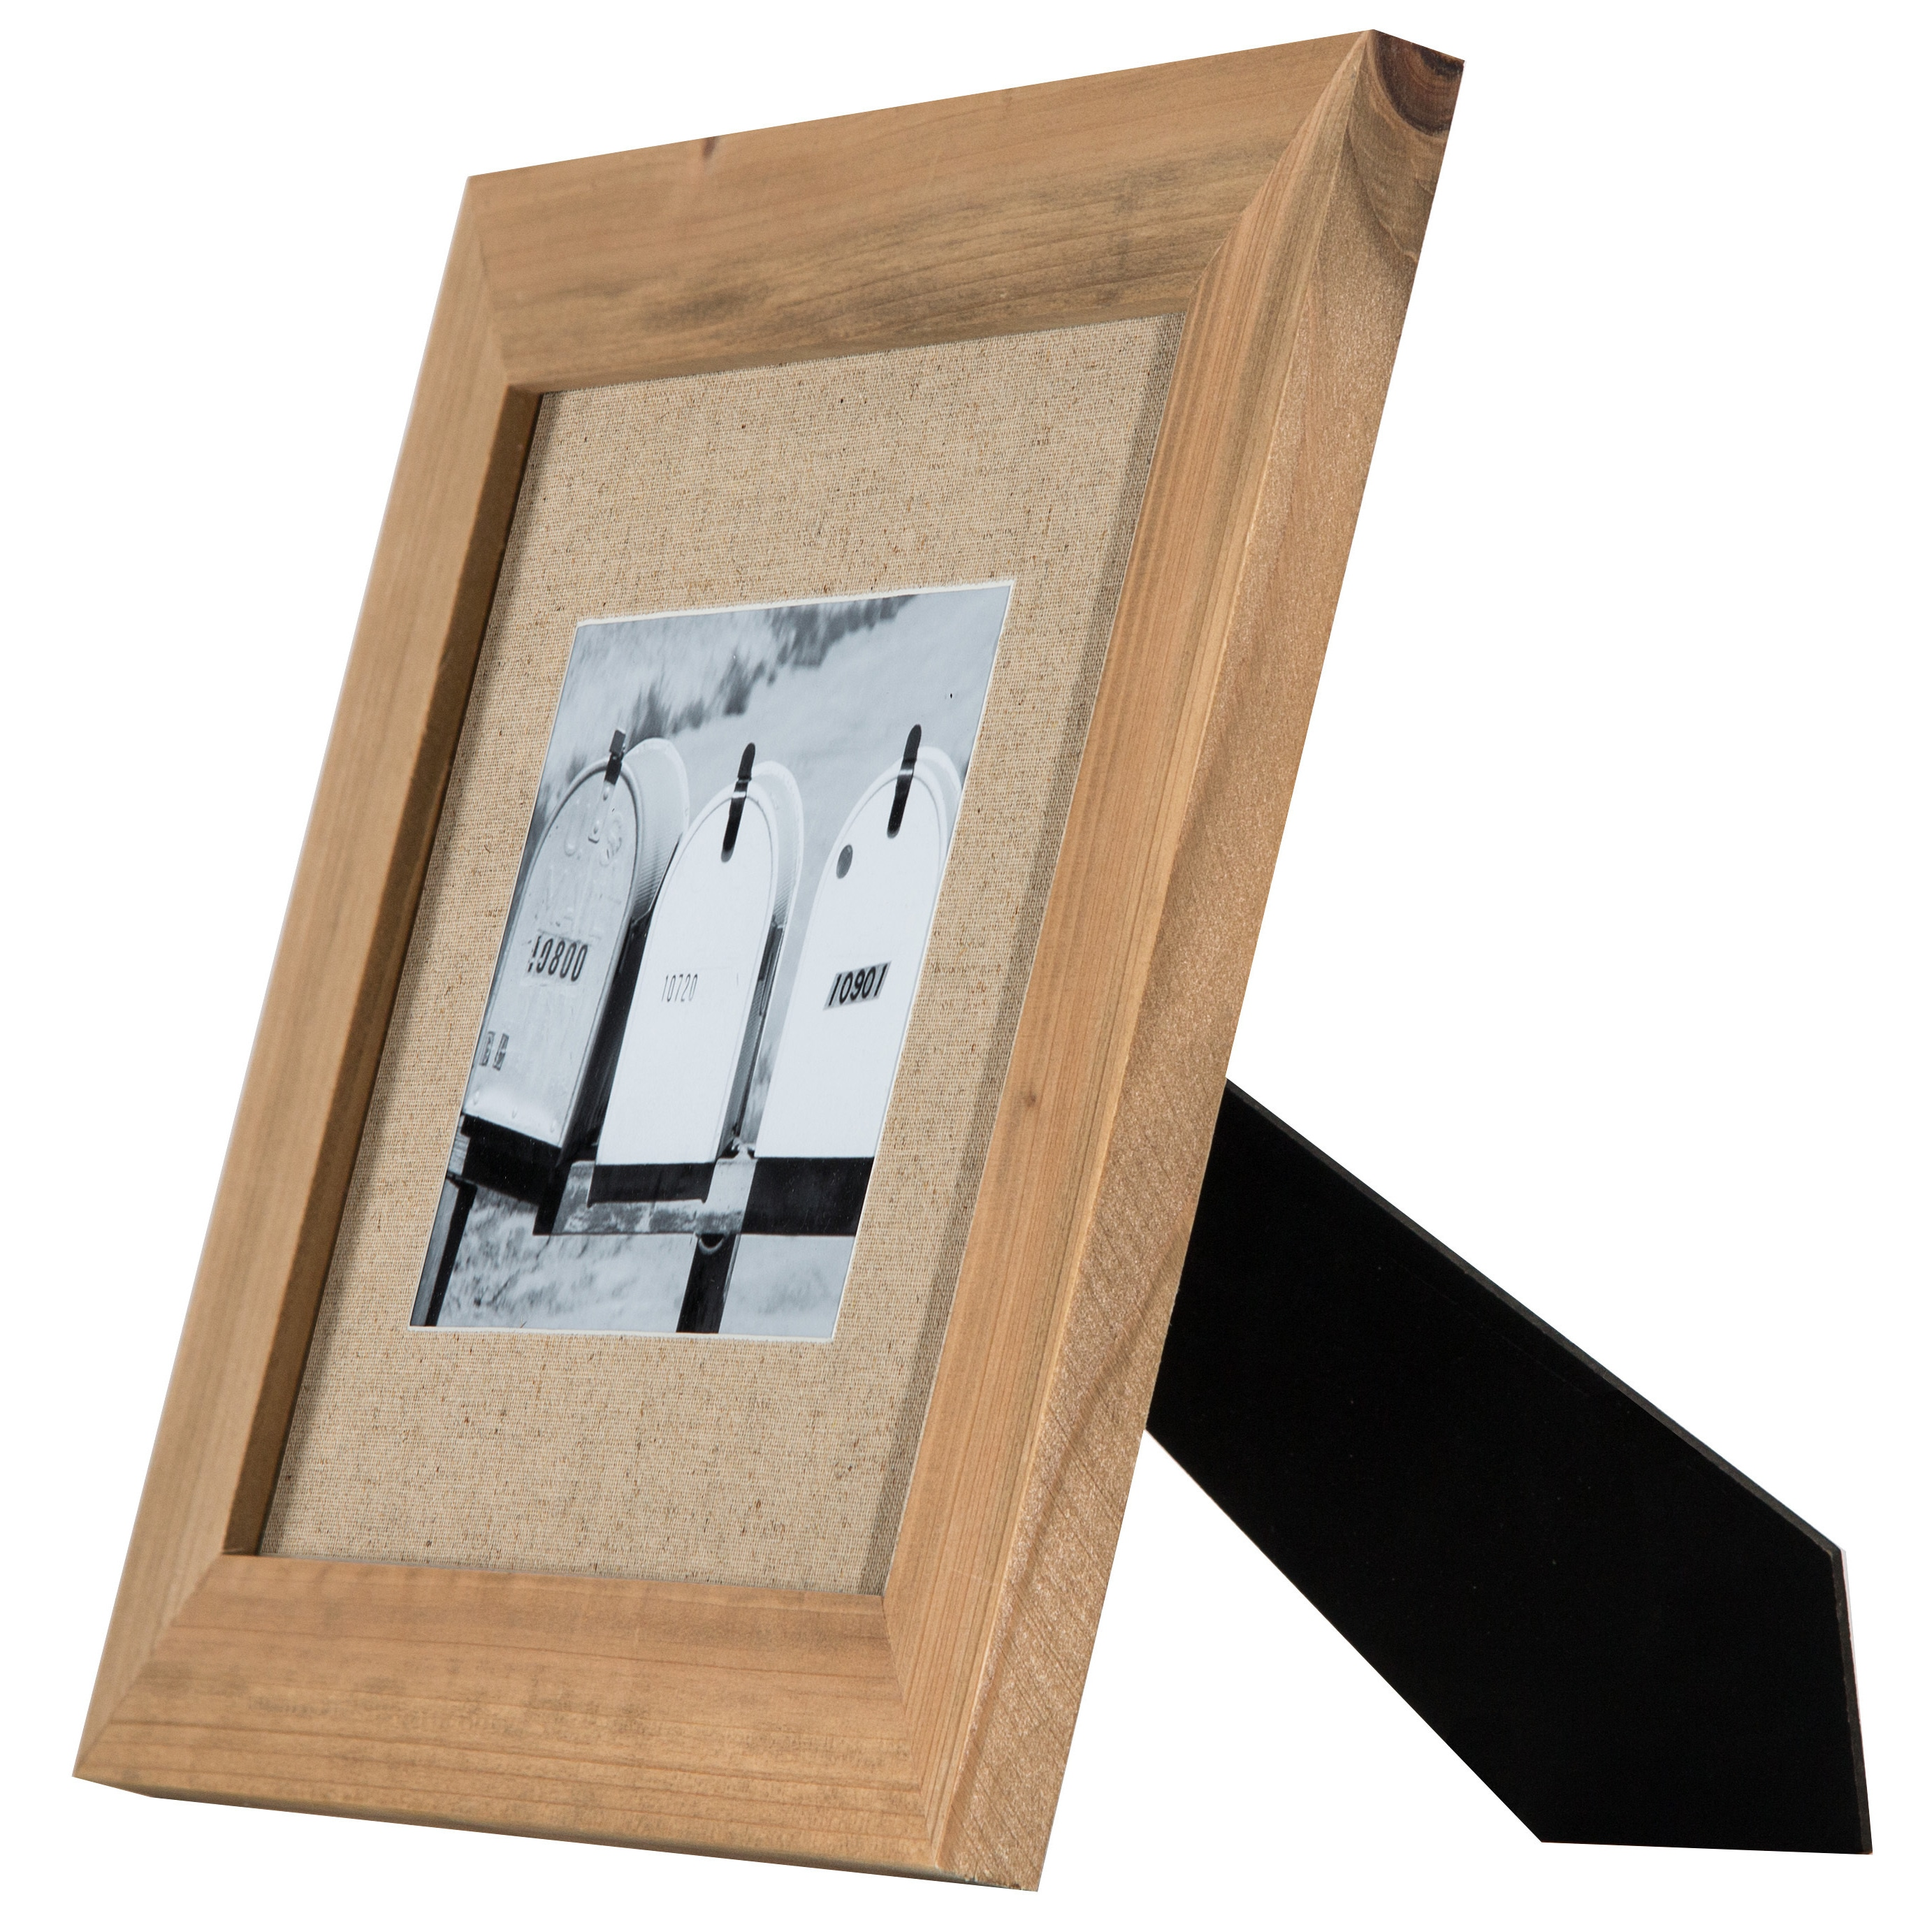 Rustic picture frame 11x14 easy craft ideas rustic picture frame 11x14 easy craft ideas jeuxipadfo Image collections